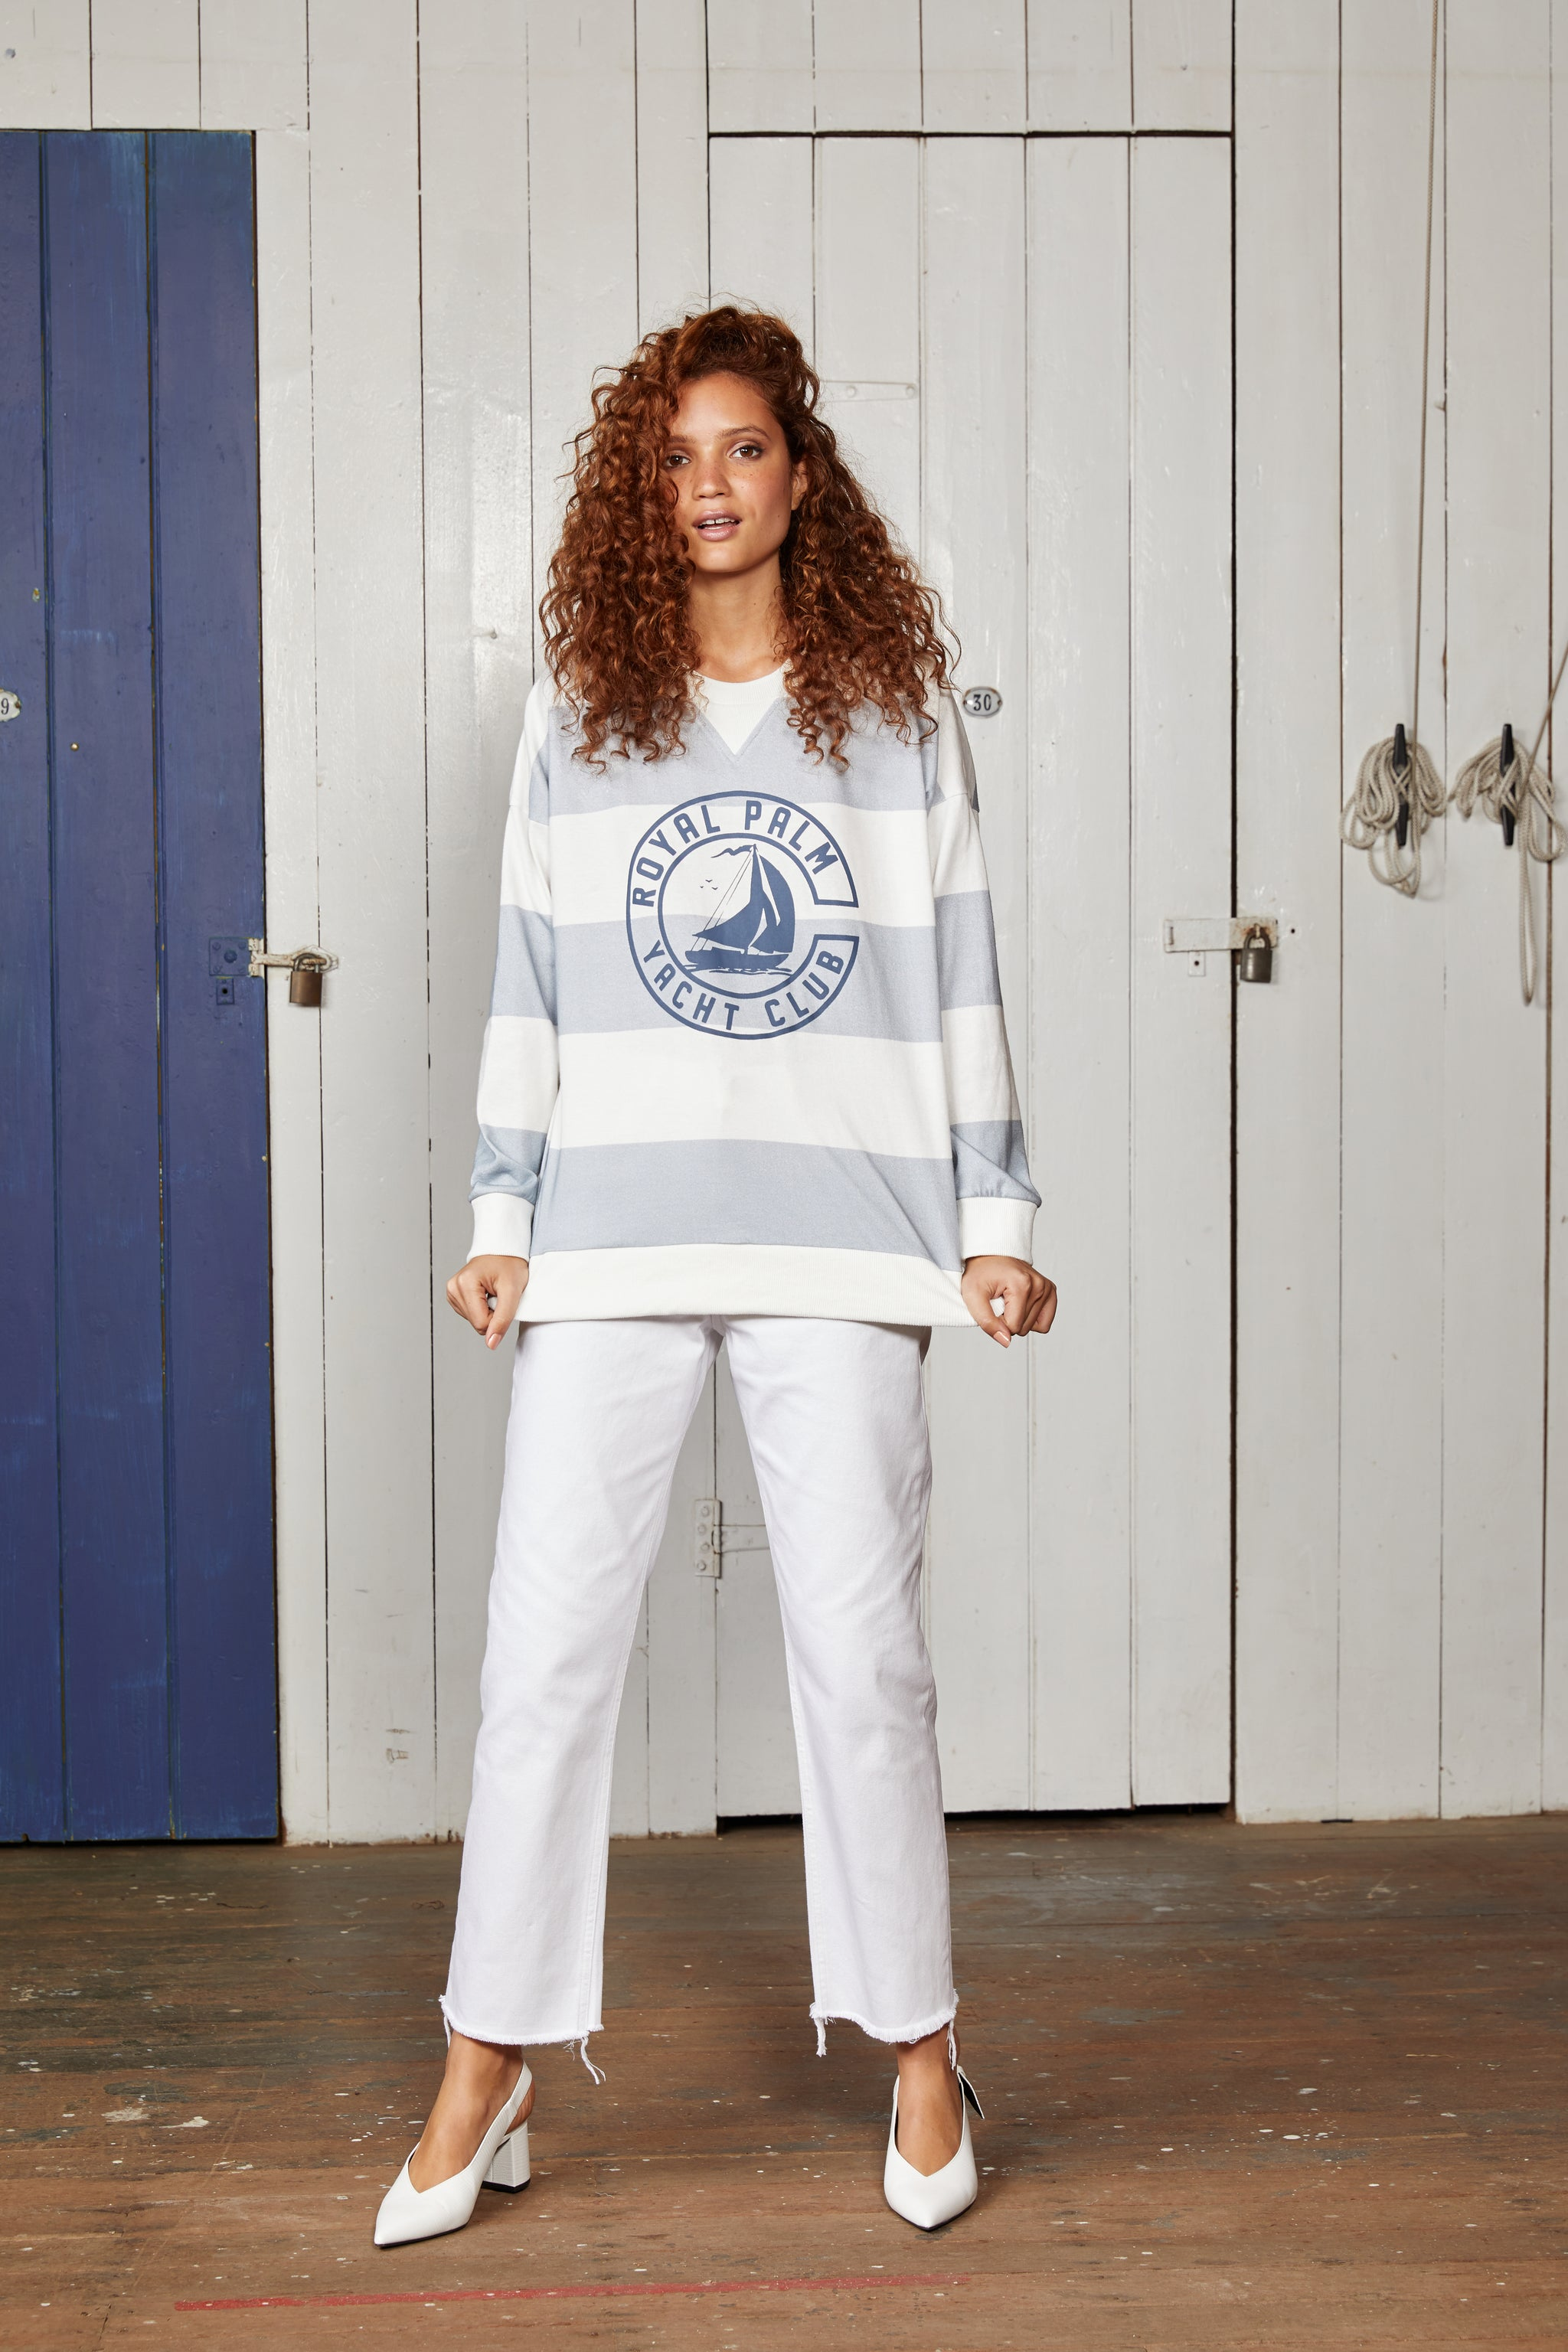 YACHT CLUB SWEATER.